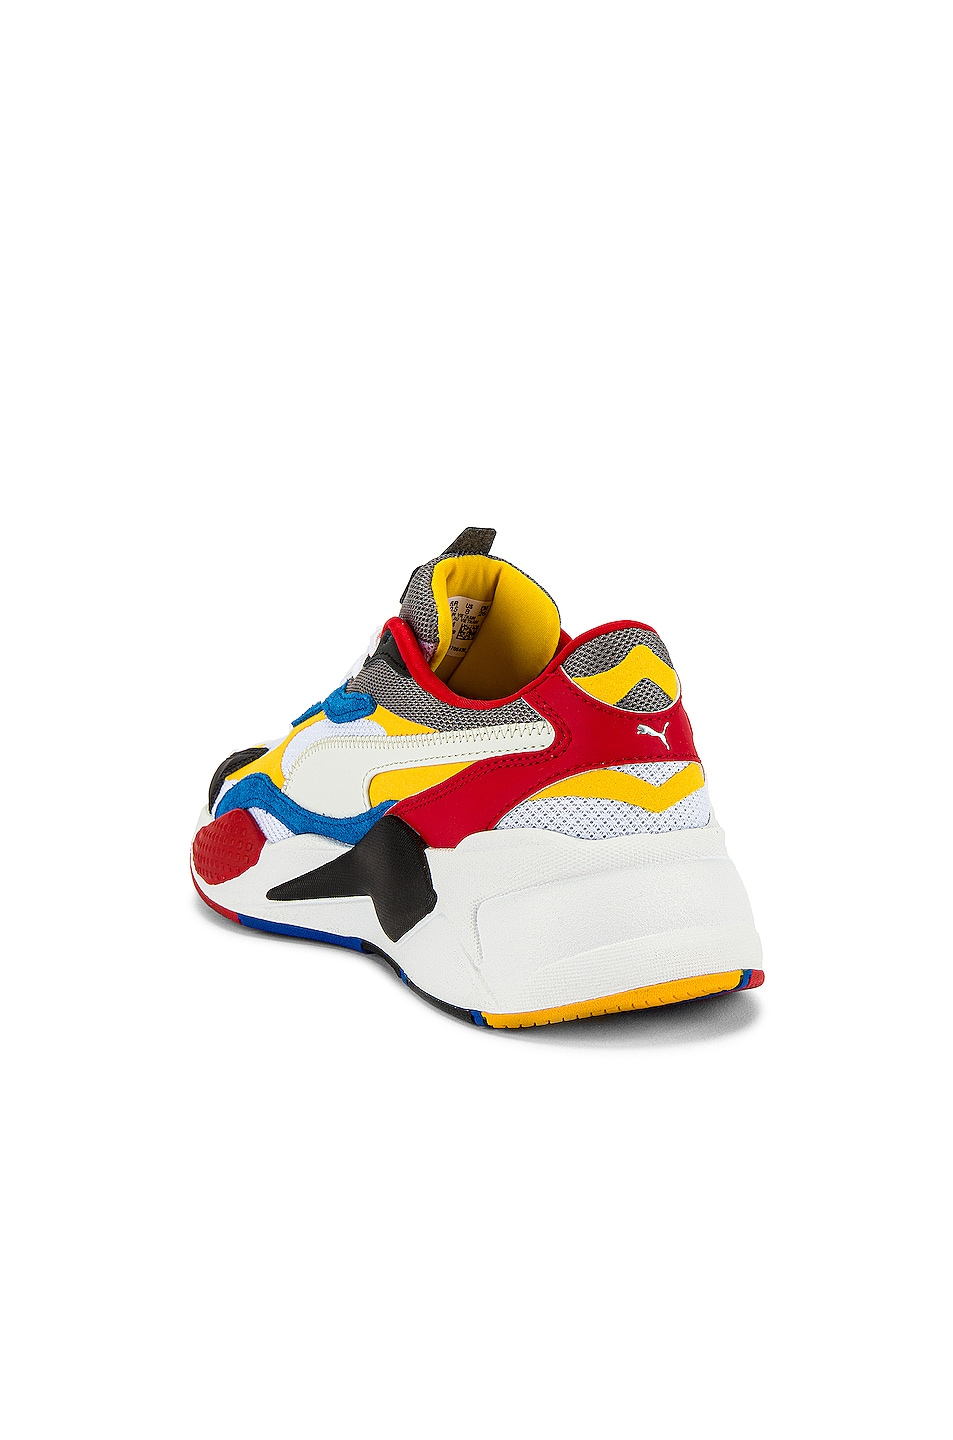 Image 3 of Puma Select RSX Cube RS-X3 Puzzle in Puma White & Spectra Yellow